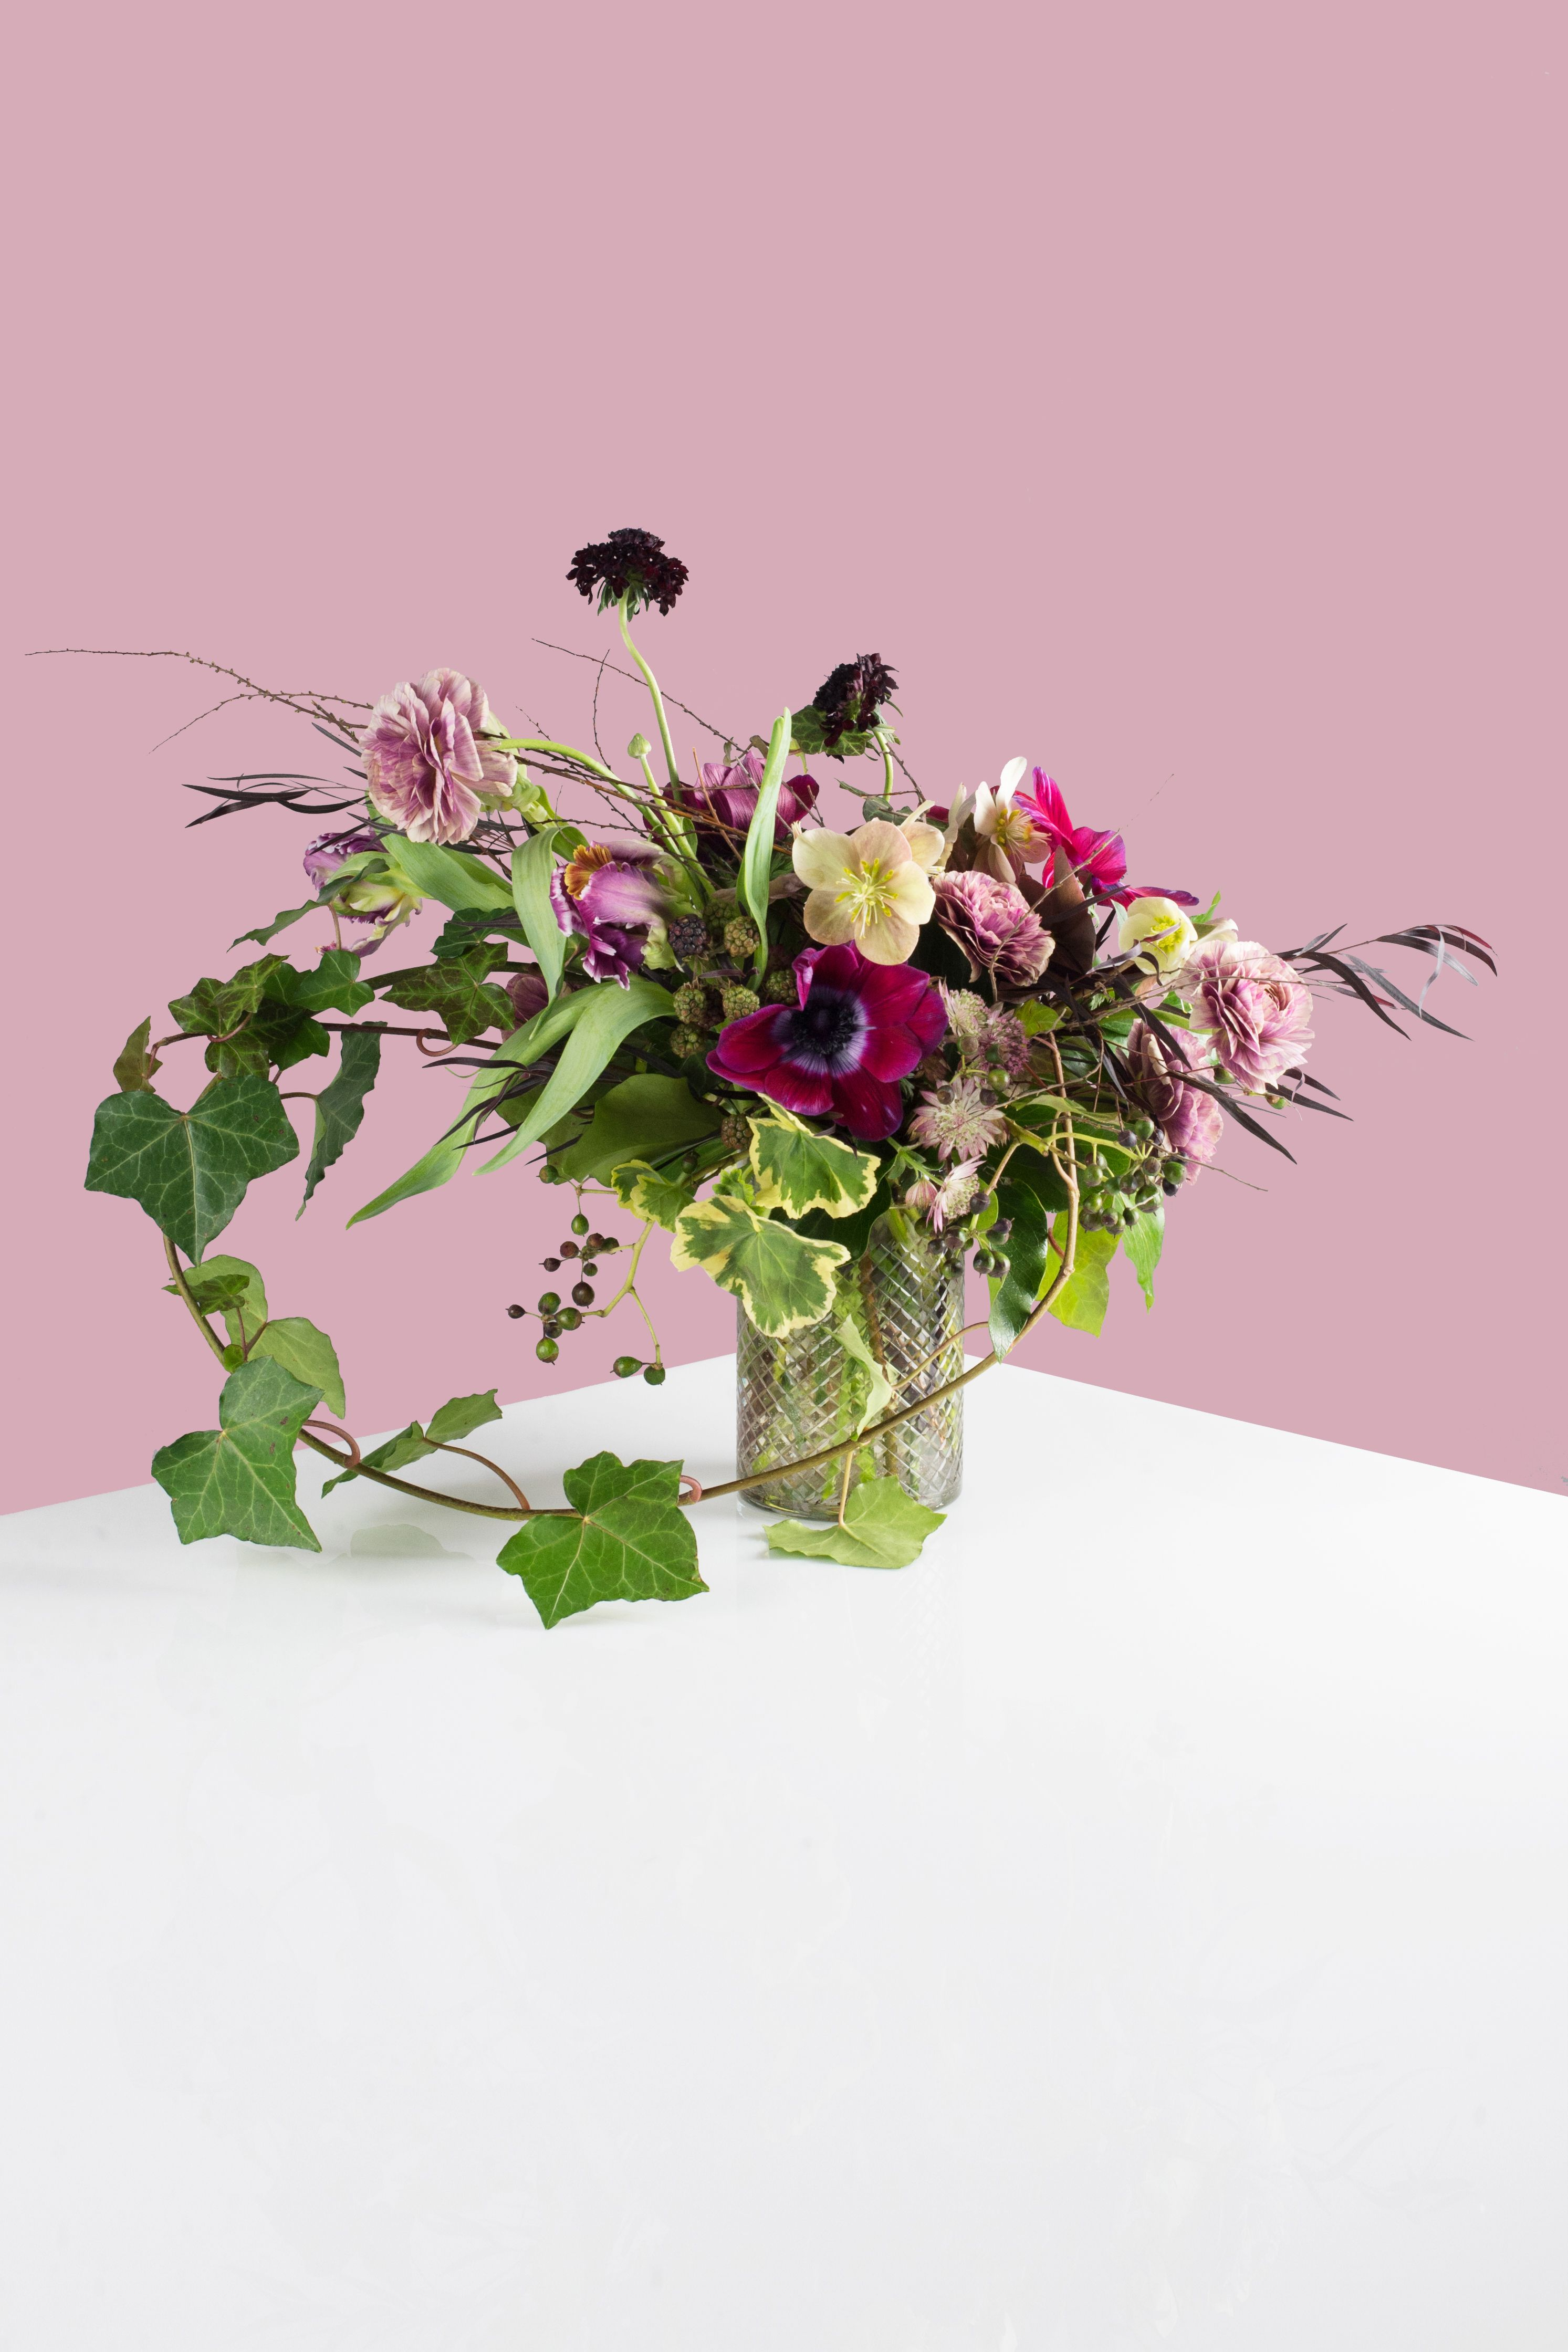 <p>For this girl, you should go for deep plum tones, twisted together. This arrangement is a gathering of the most hauntingly beautiful blooms, a little witchy and wild. </p> <p><em>Materials: Parrot Tulip, Ranunculus, Hellebores, Tetra Anemone, Astrantia, Agonis, Geranium, Spirea, Blackberries, Ivy</em></p> <p><em>Retails at $200.</em></p>